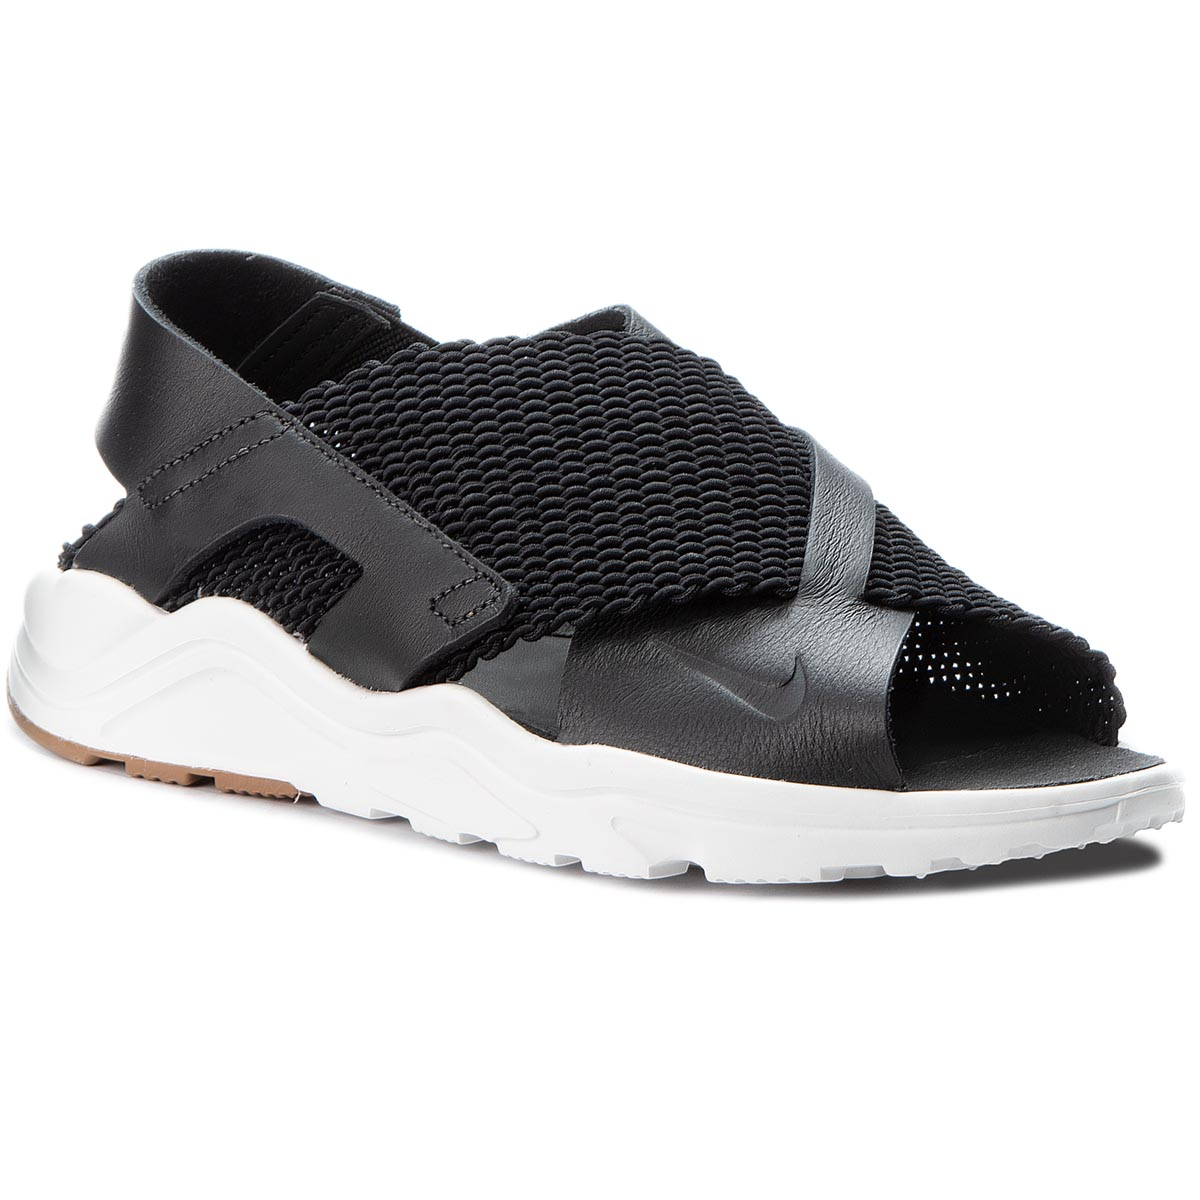 Sandale NIKE - Air Huarache Huearache Ultra 885118 001 Black/Black/Sail/Gum Med Brown